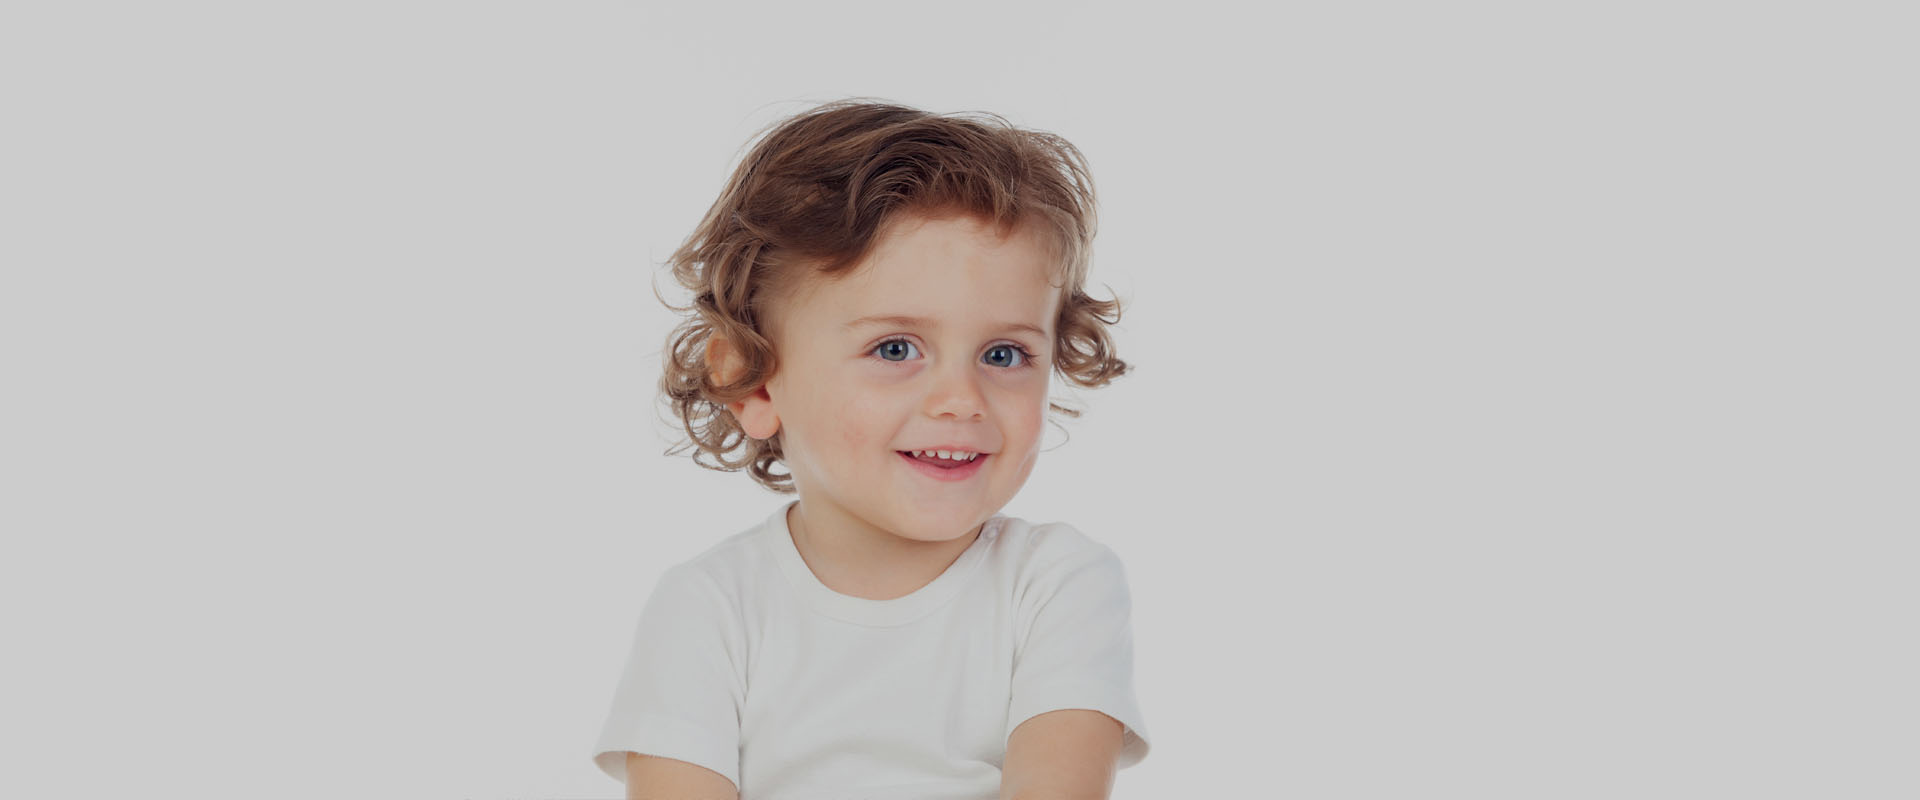 young toddler smiling showing baby teeth wearing white shirt